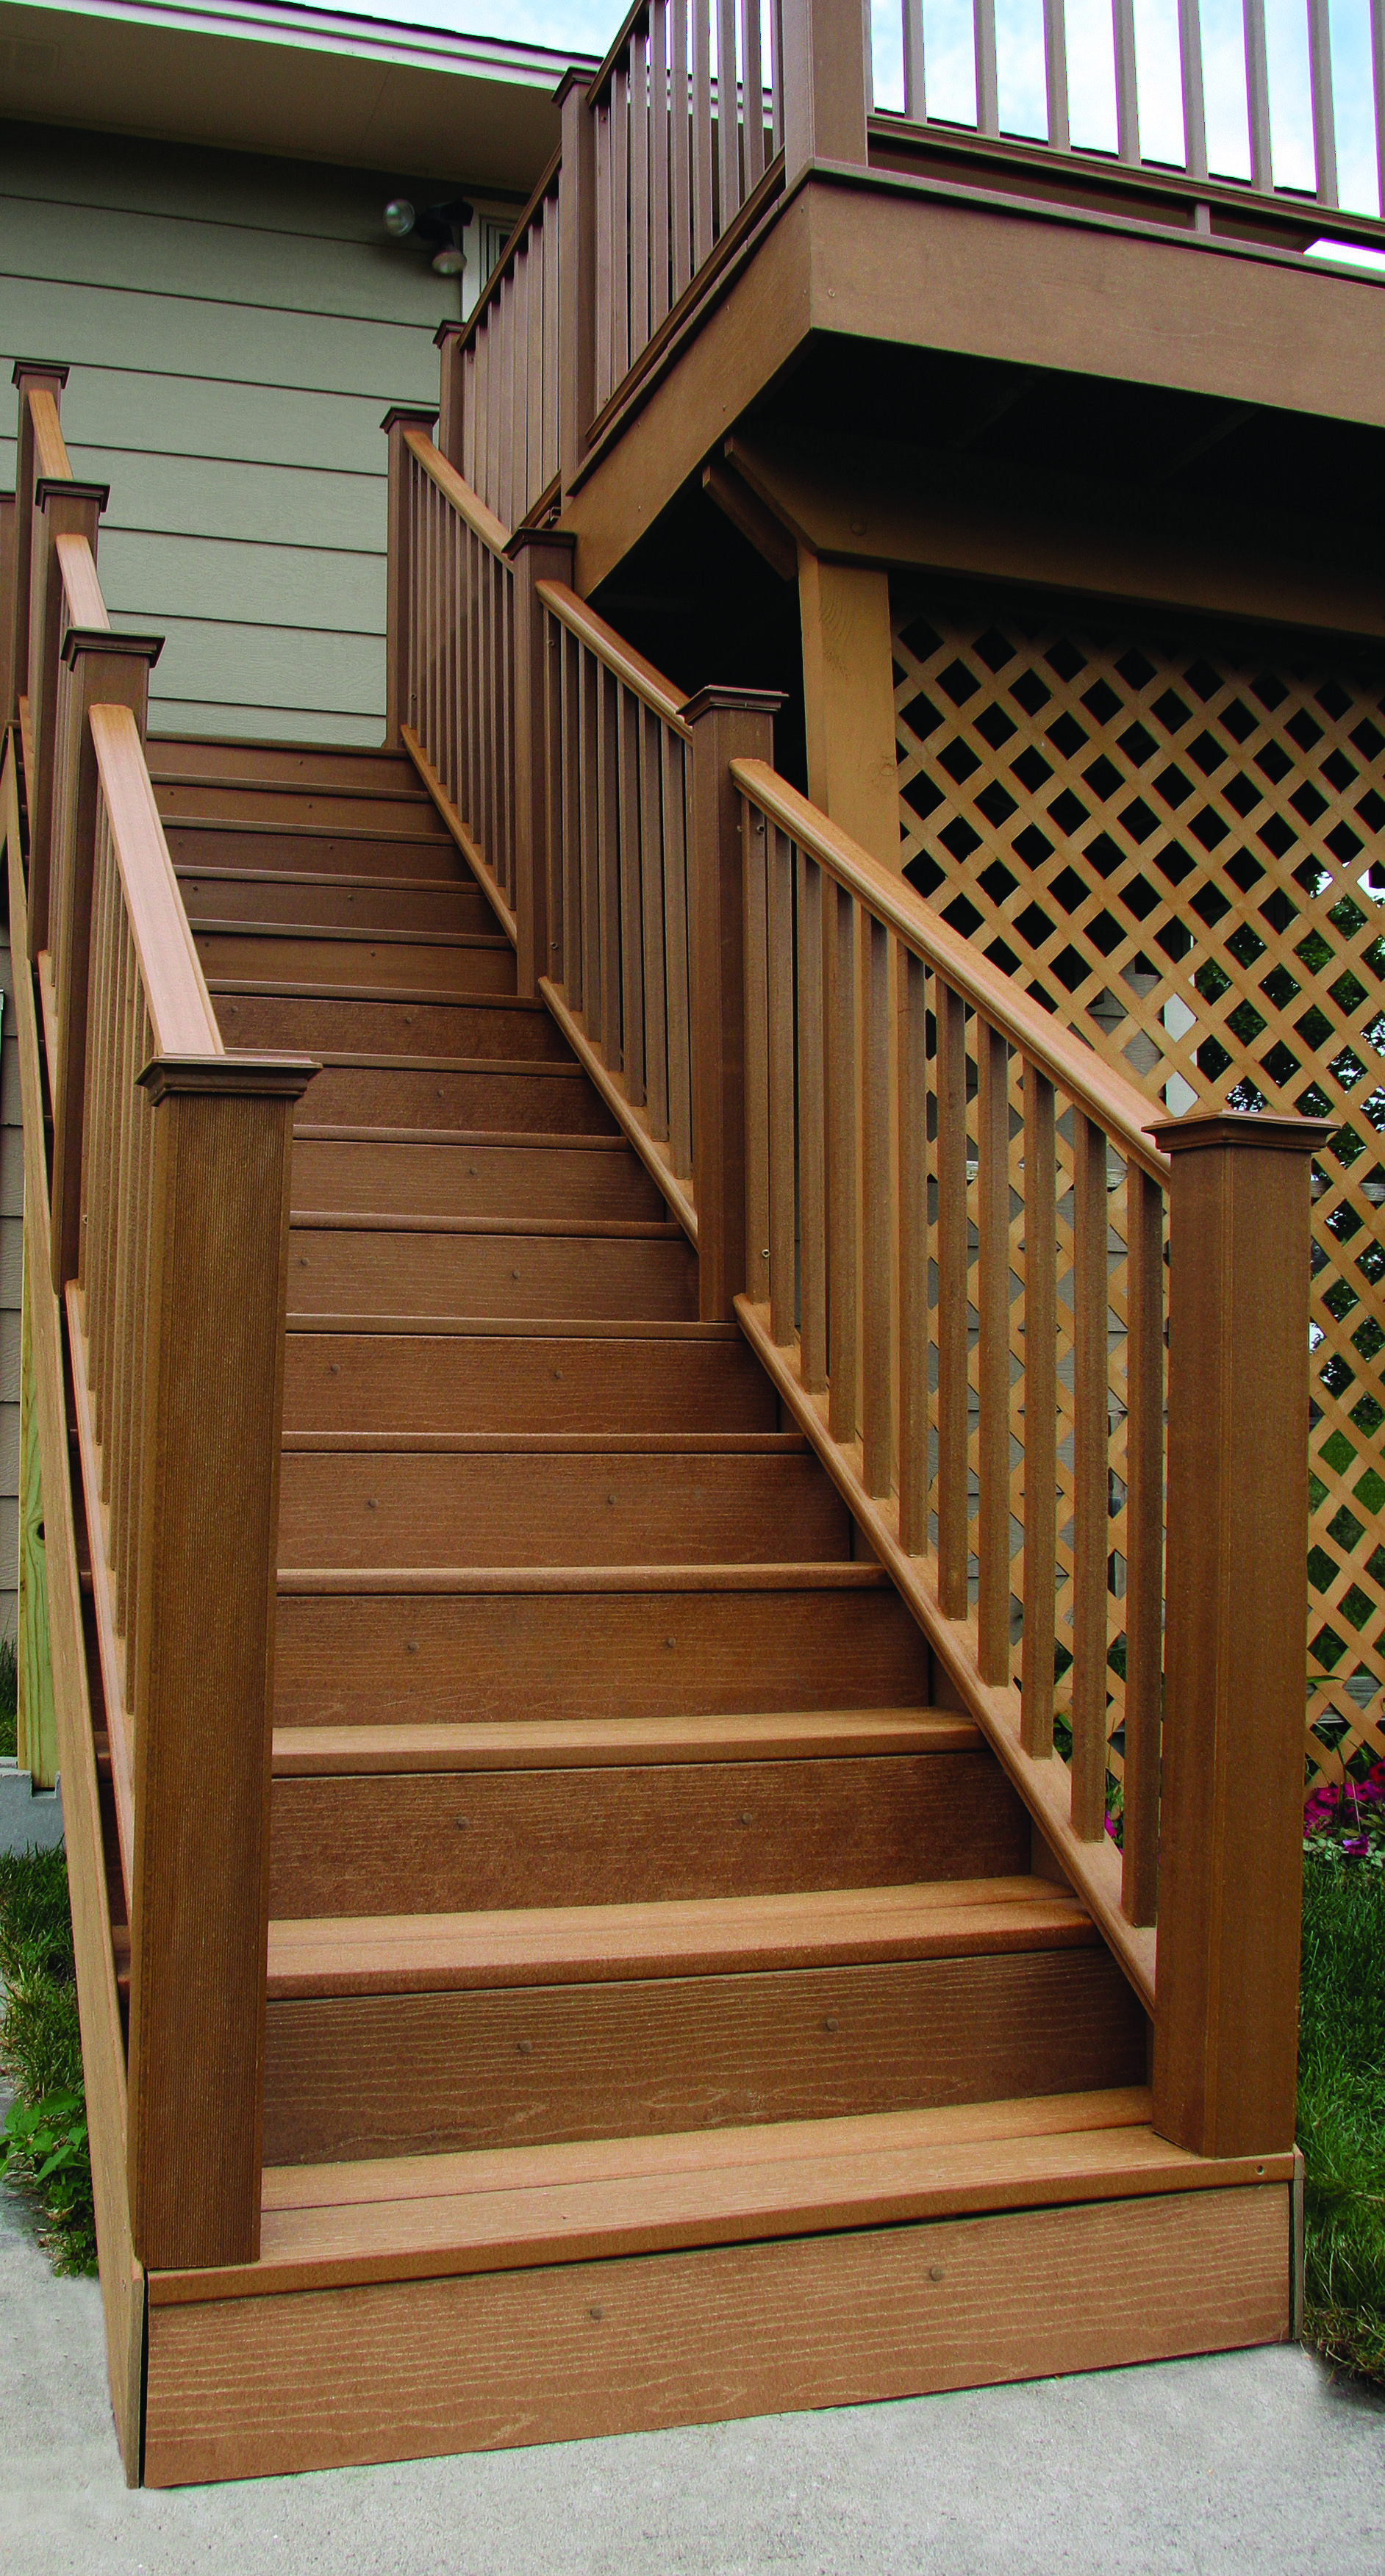 Complement your deck design with 32'' UltraDeck Rustic